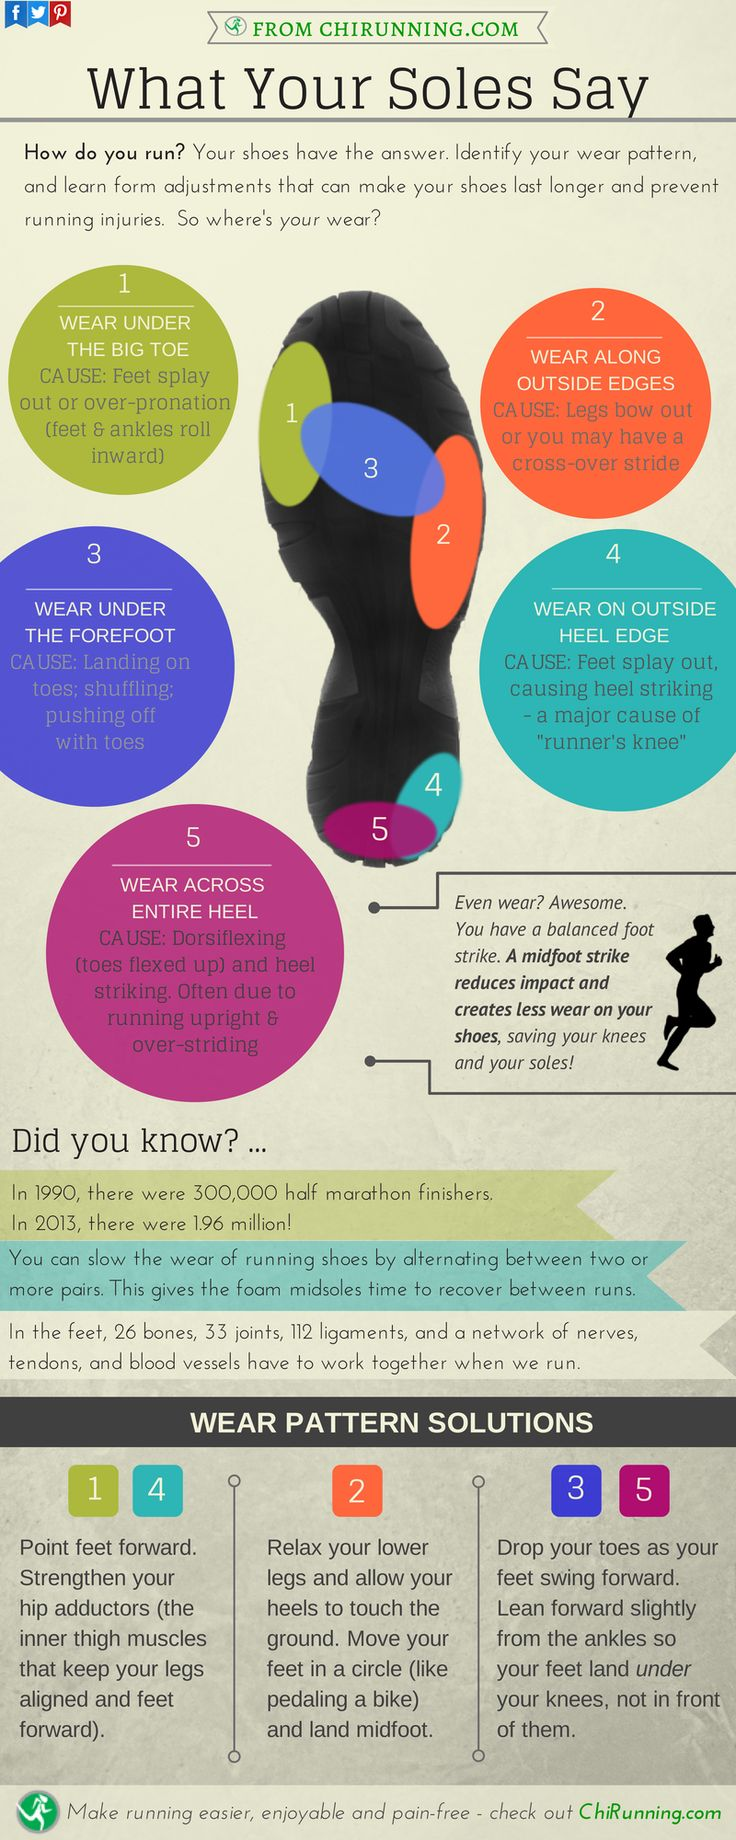 what-your-soles-say running shoe wear wear patterns on running shoes